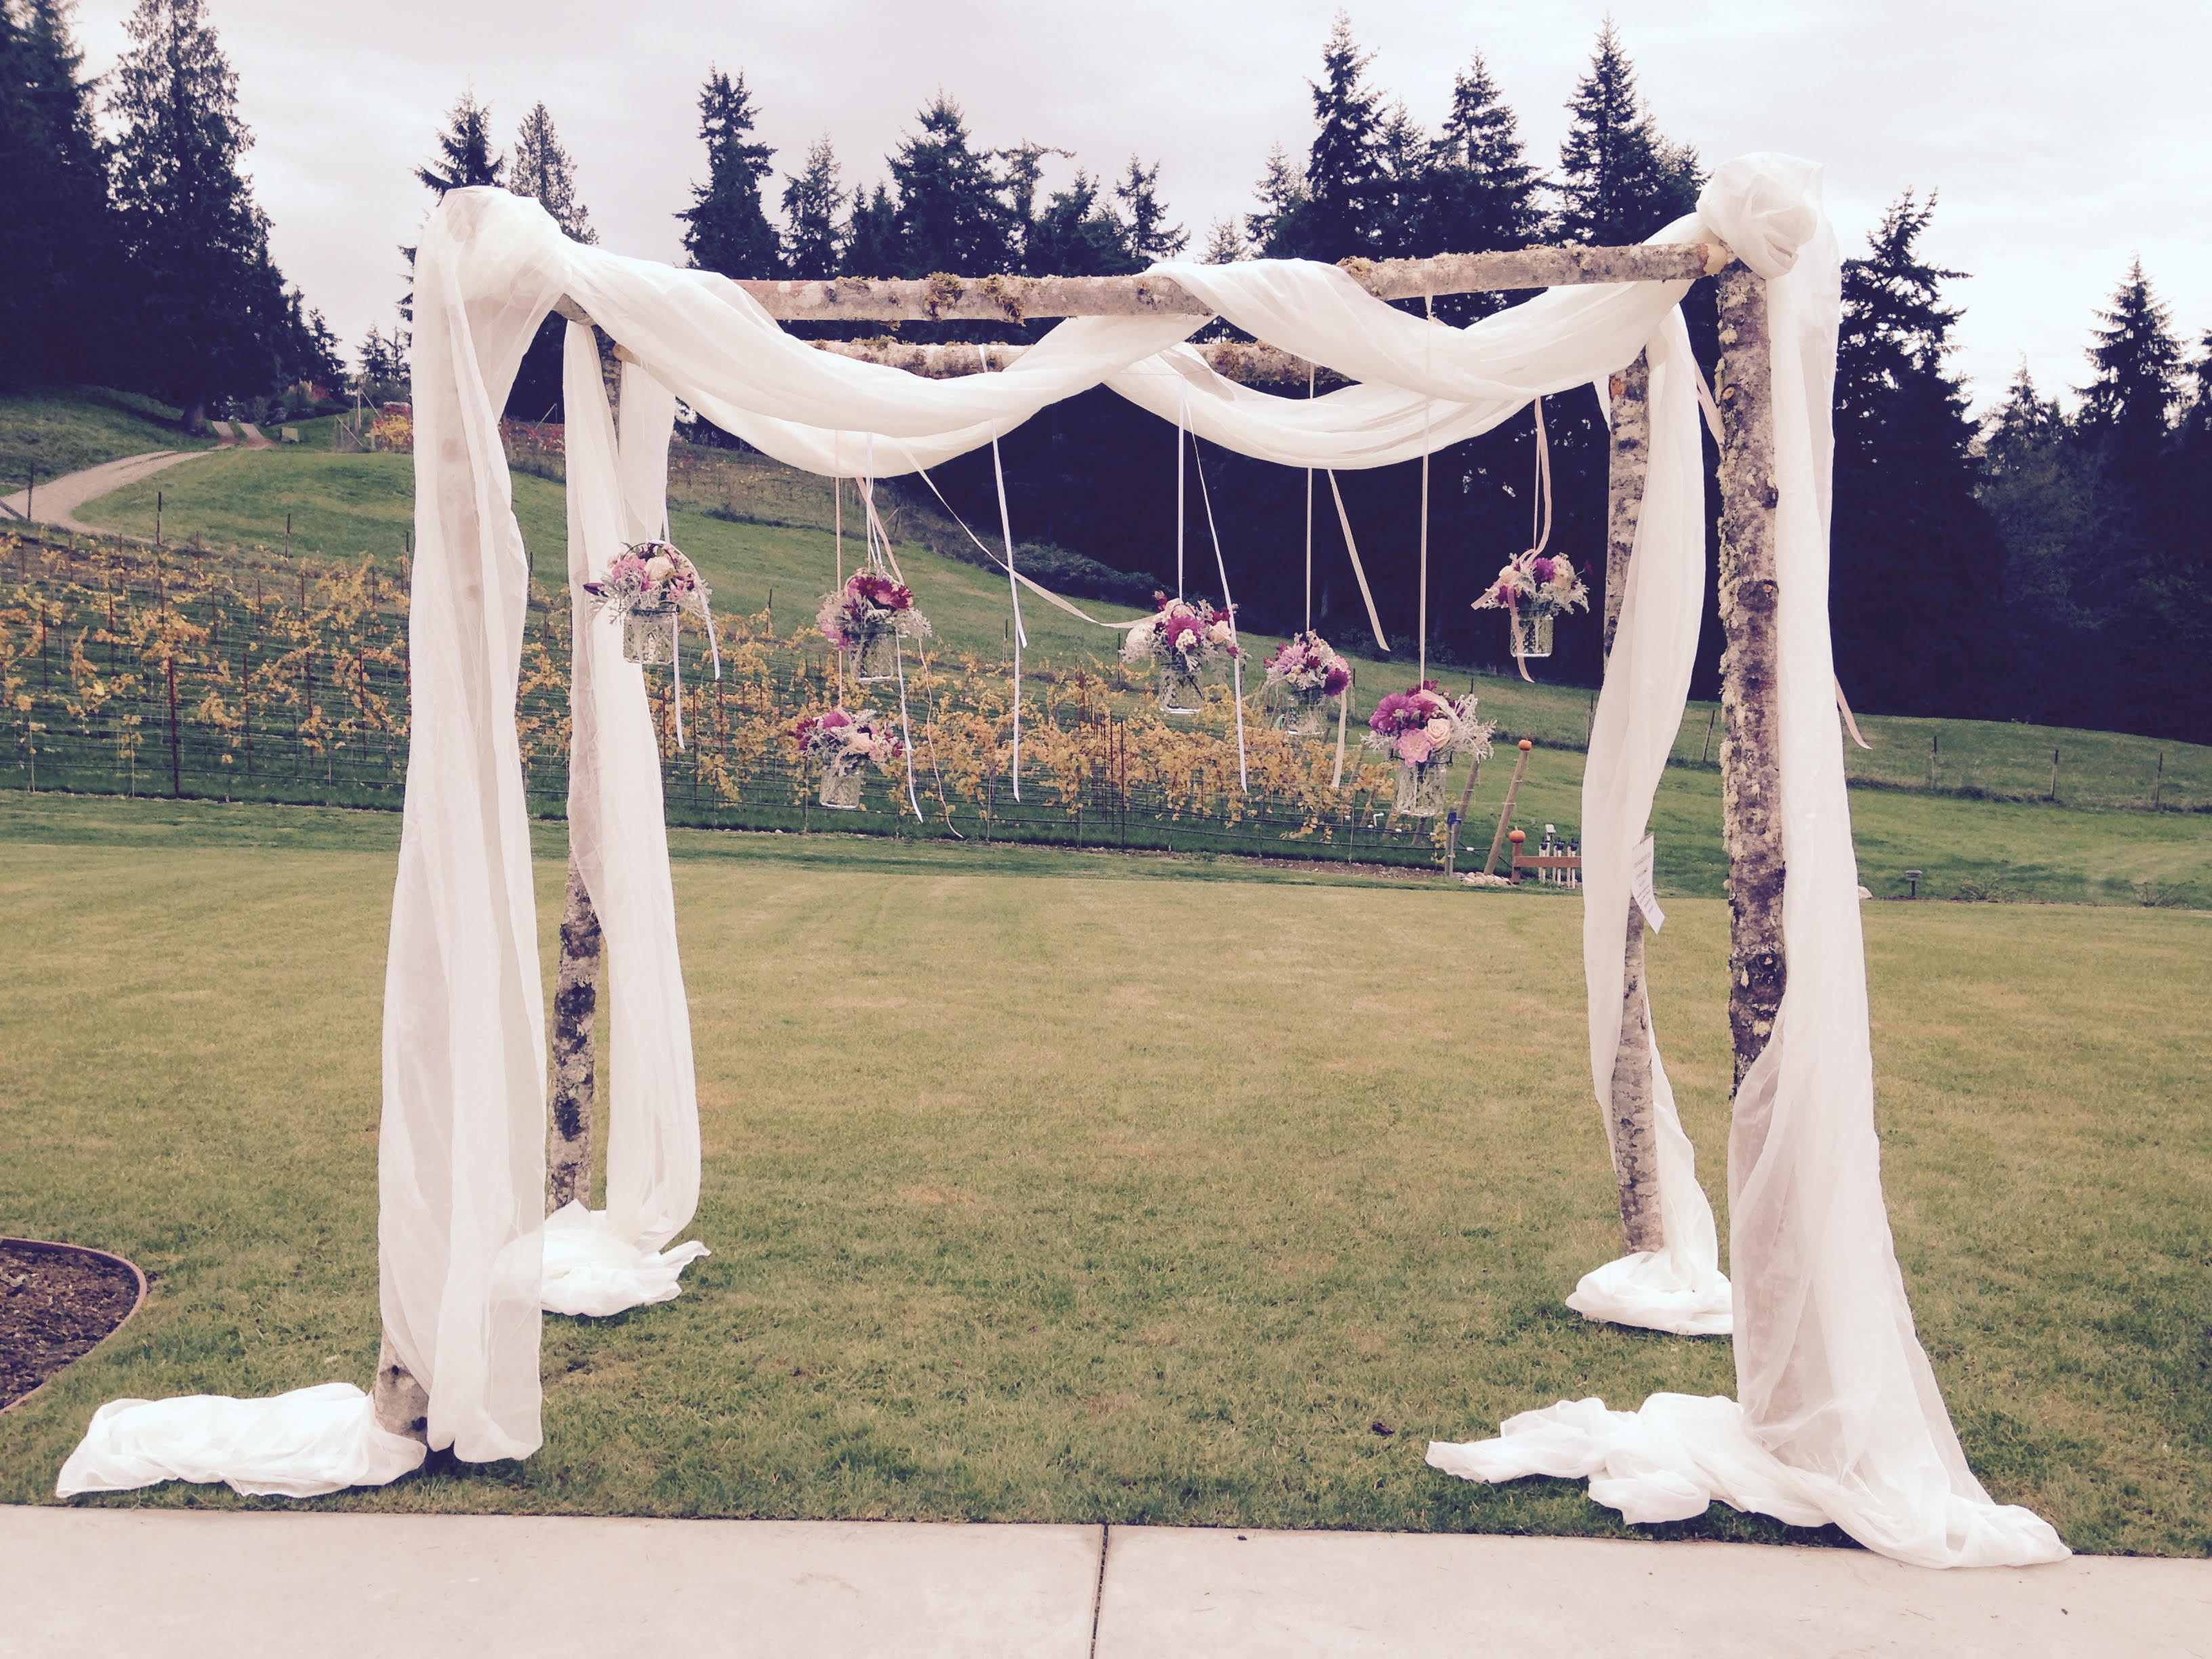 Wedding arbor for rent tobey nelson weddings events wedding arbor decorated with hanging vases of pink and purple reviewsmspy